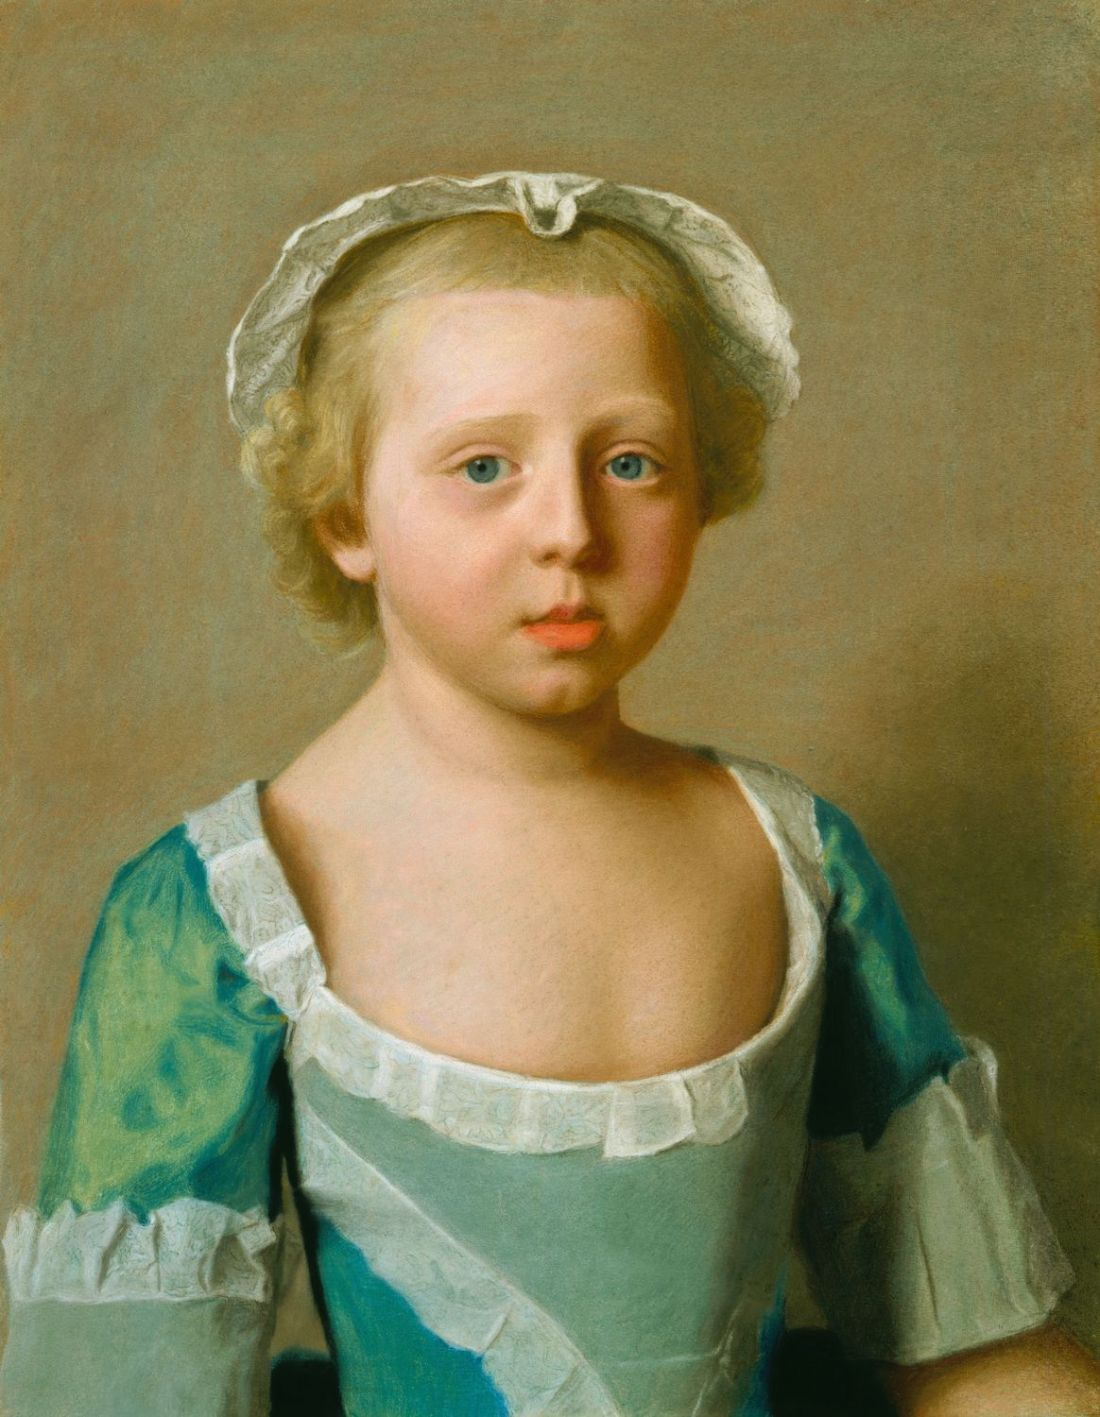 Princess Caroline Mathilda. 1754.